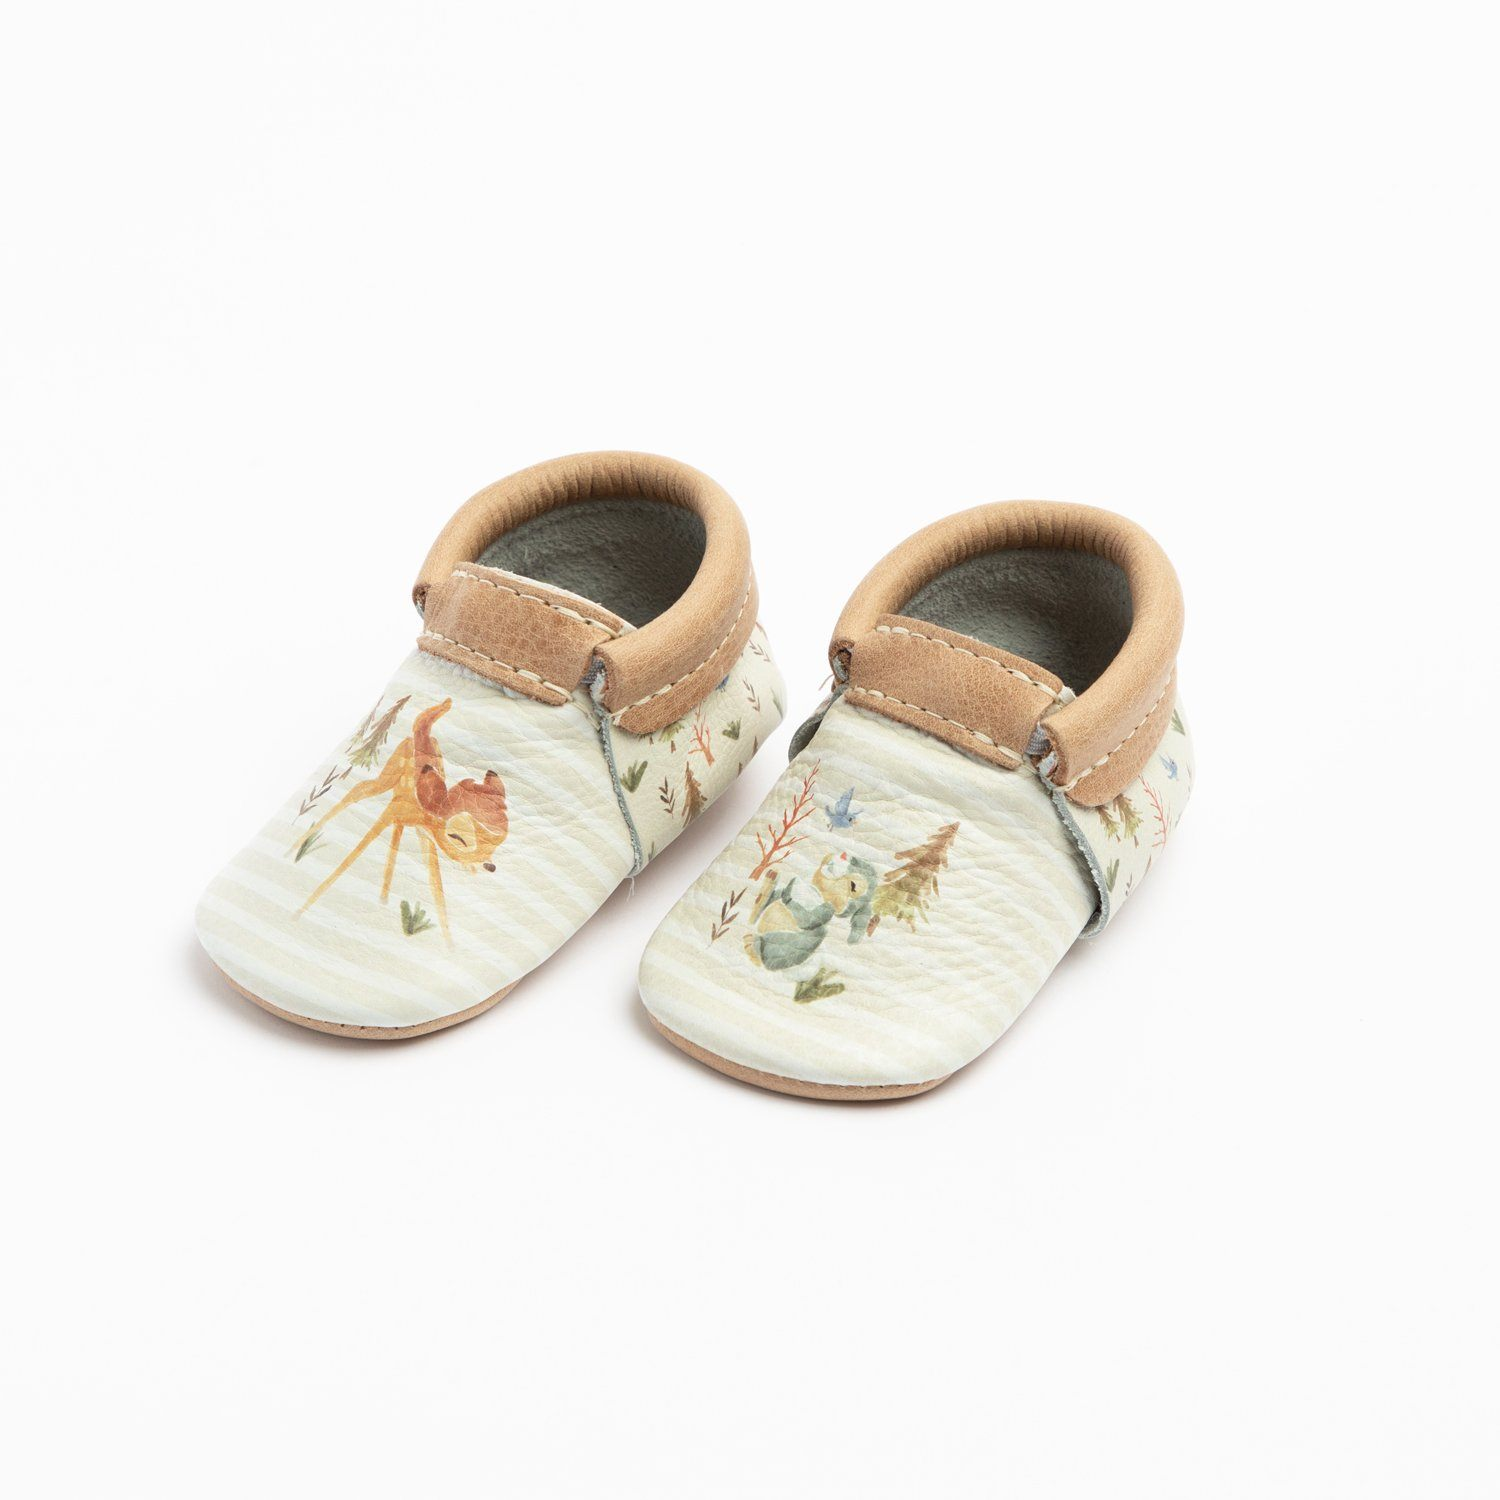 Bambi and Thumper City Mocc Mini Sole Mini Sole City Mocc mini soles